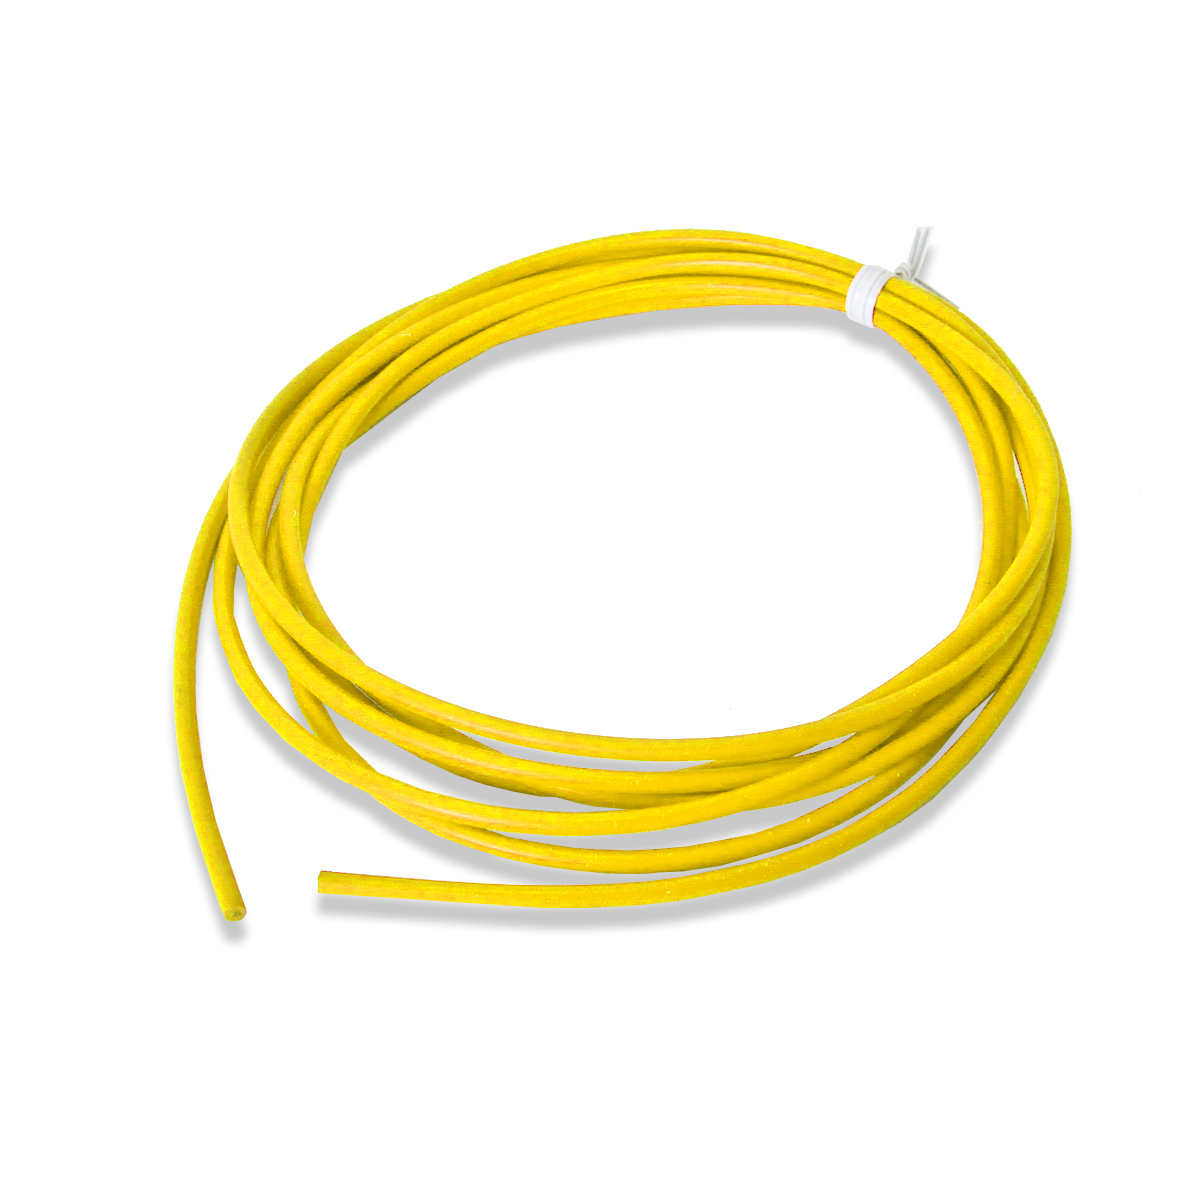 Coolflex45 silicone Wire 10awg 10Ft.